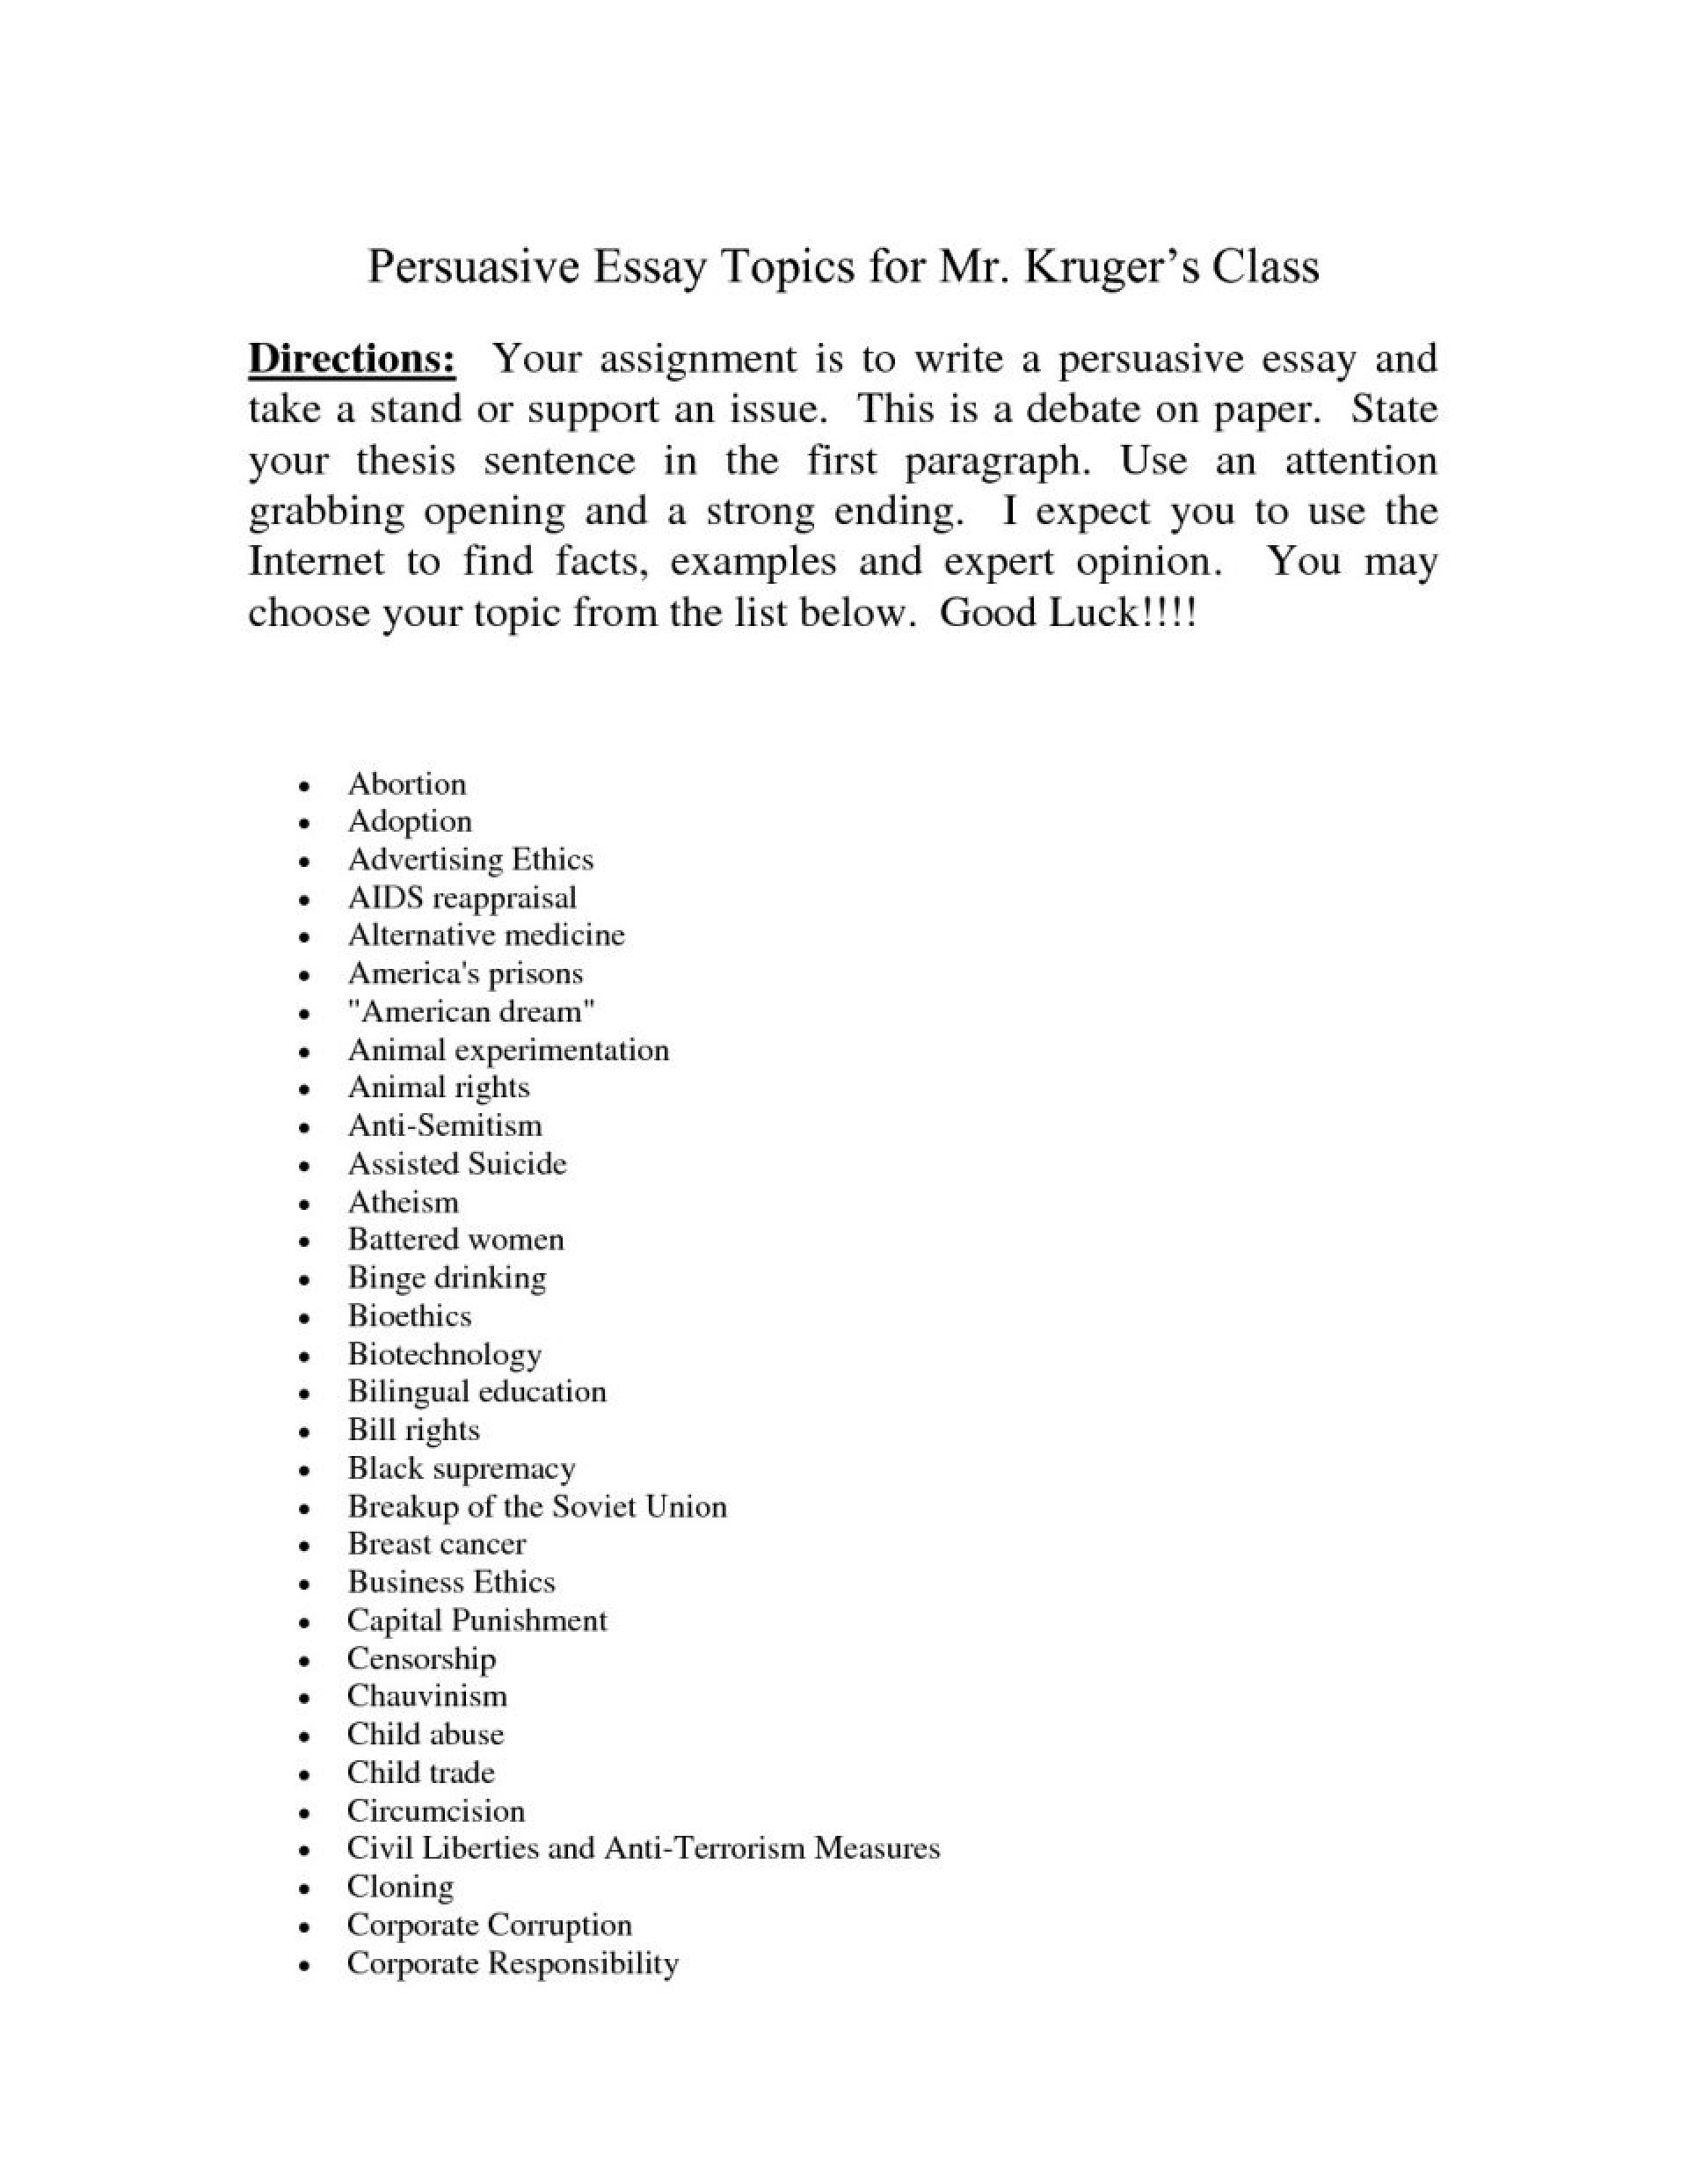 008 Topic For Essay Barca Fontanacountryinn Within Good Persuasive Narrative Topics To Write Abo Easy About Personal Descriptivearch Paper Informative Synthesis College 960x1242 Striking Research Business On Ethics Law Class 1920